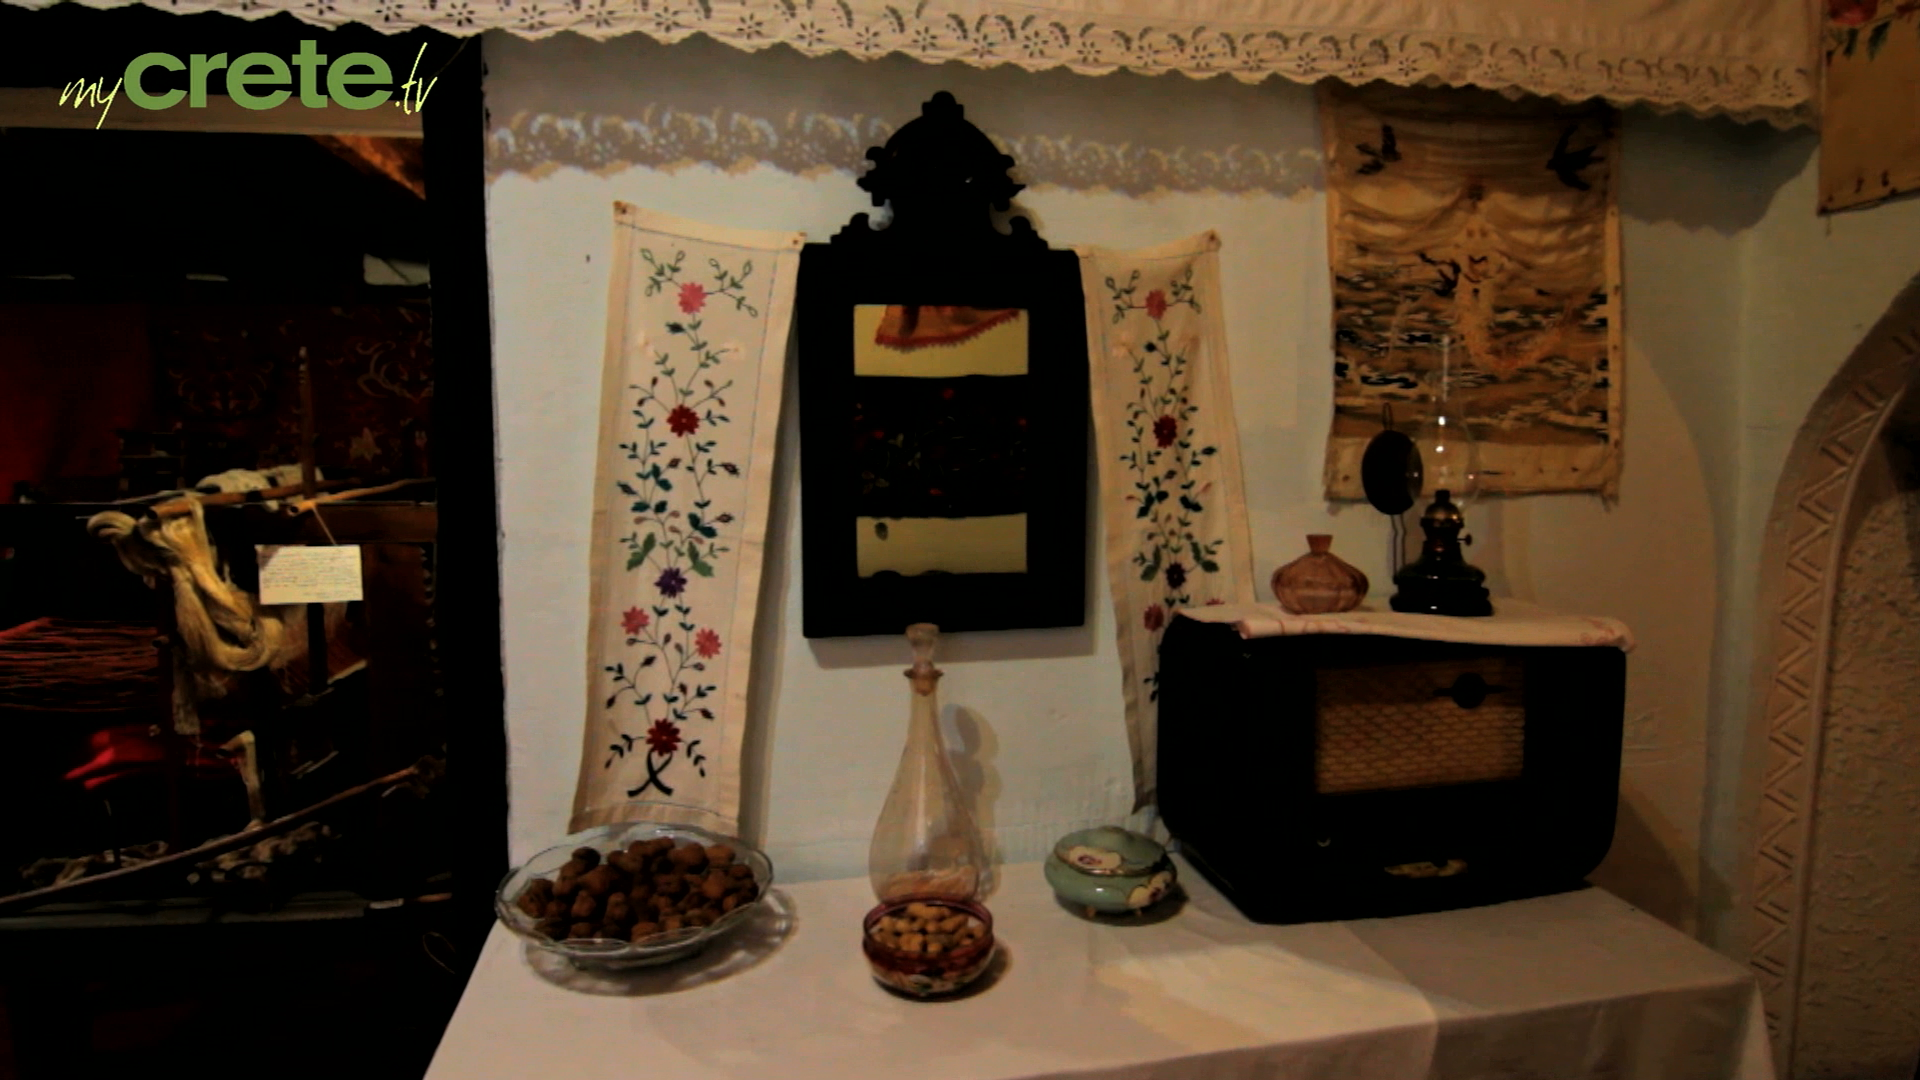 Folklore Museum of Chania